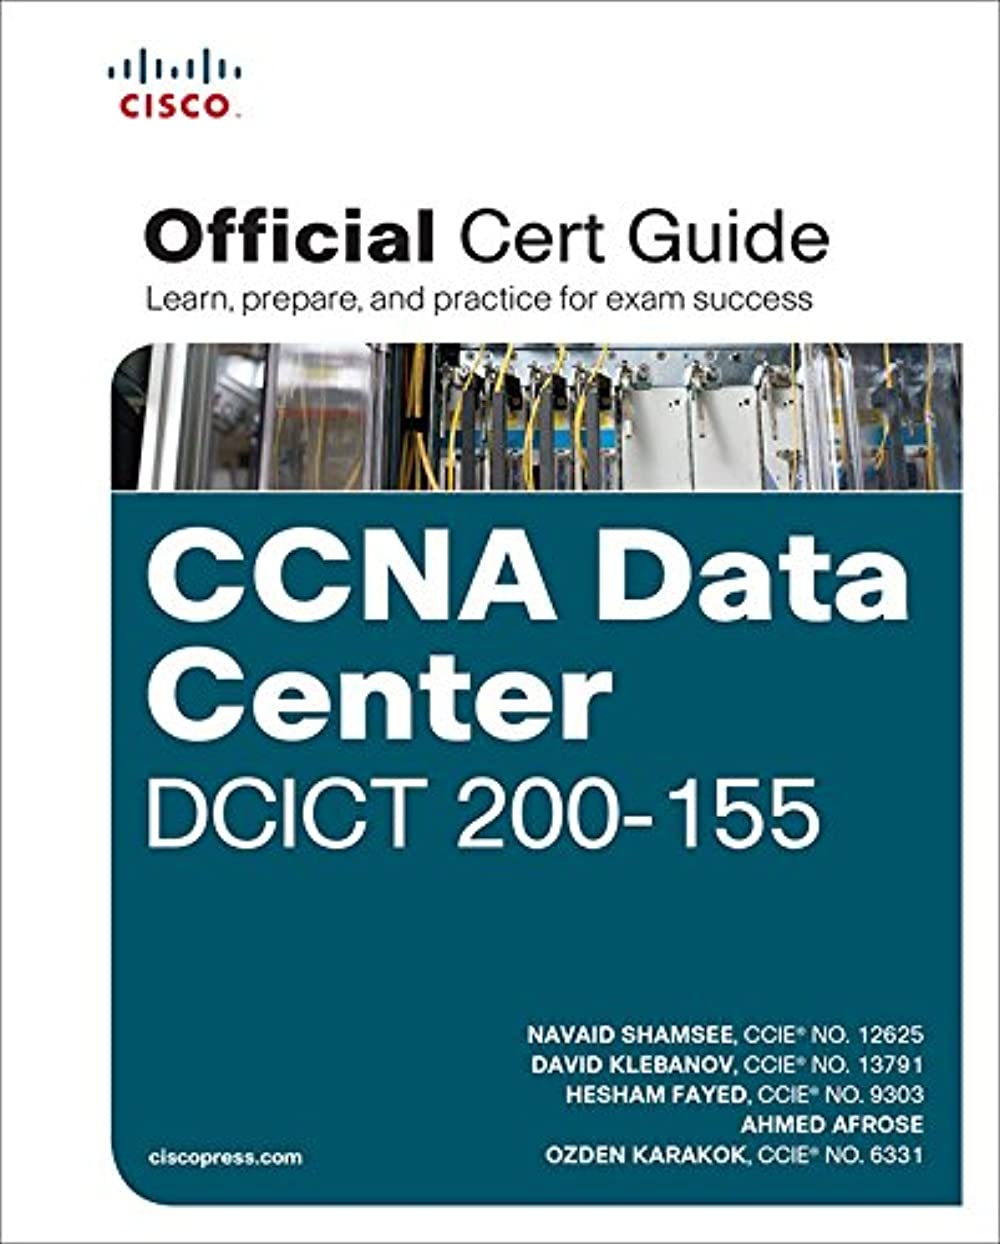 外交問題契約するヒロイックCCNA Data Center DCICT 200-155 Official Cert Guide: Exam 67 Offic Cert ePub _1 (Certification Guide) (English Edition)